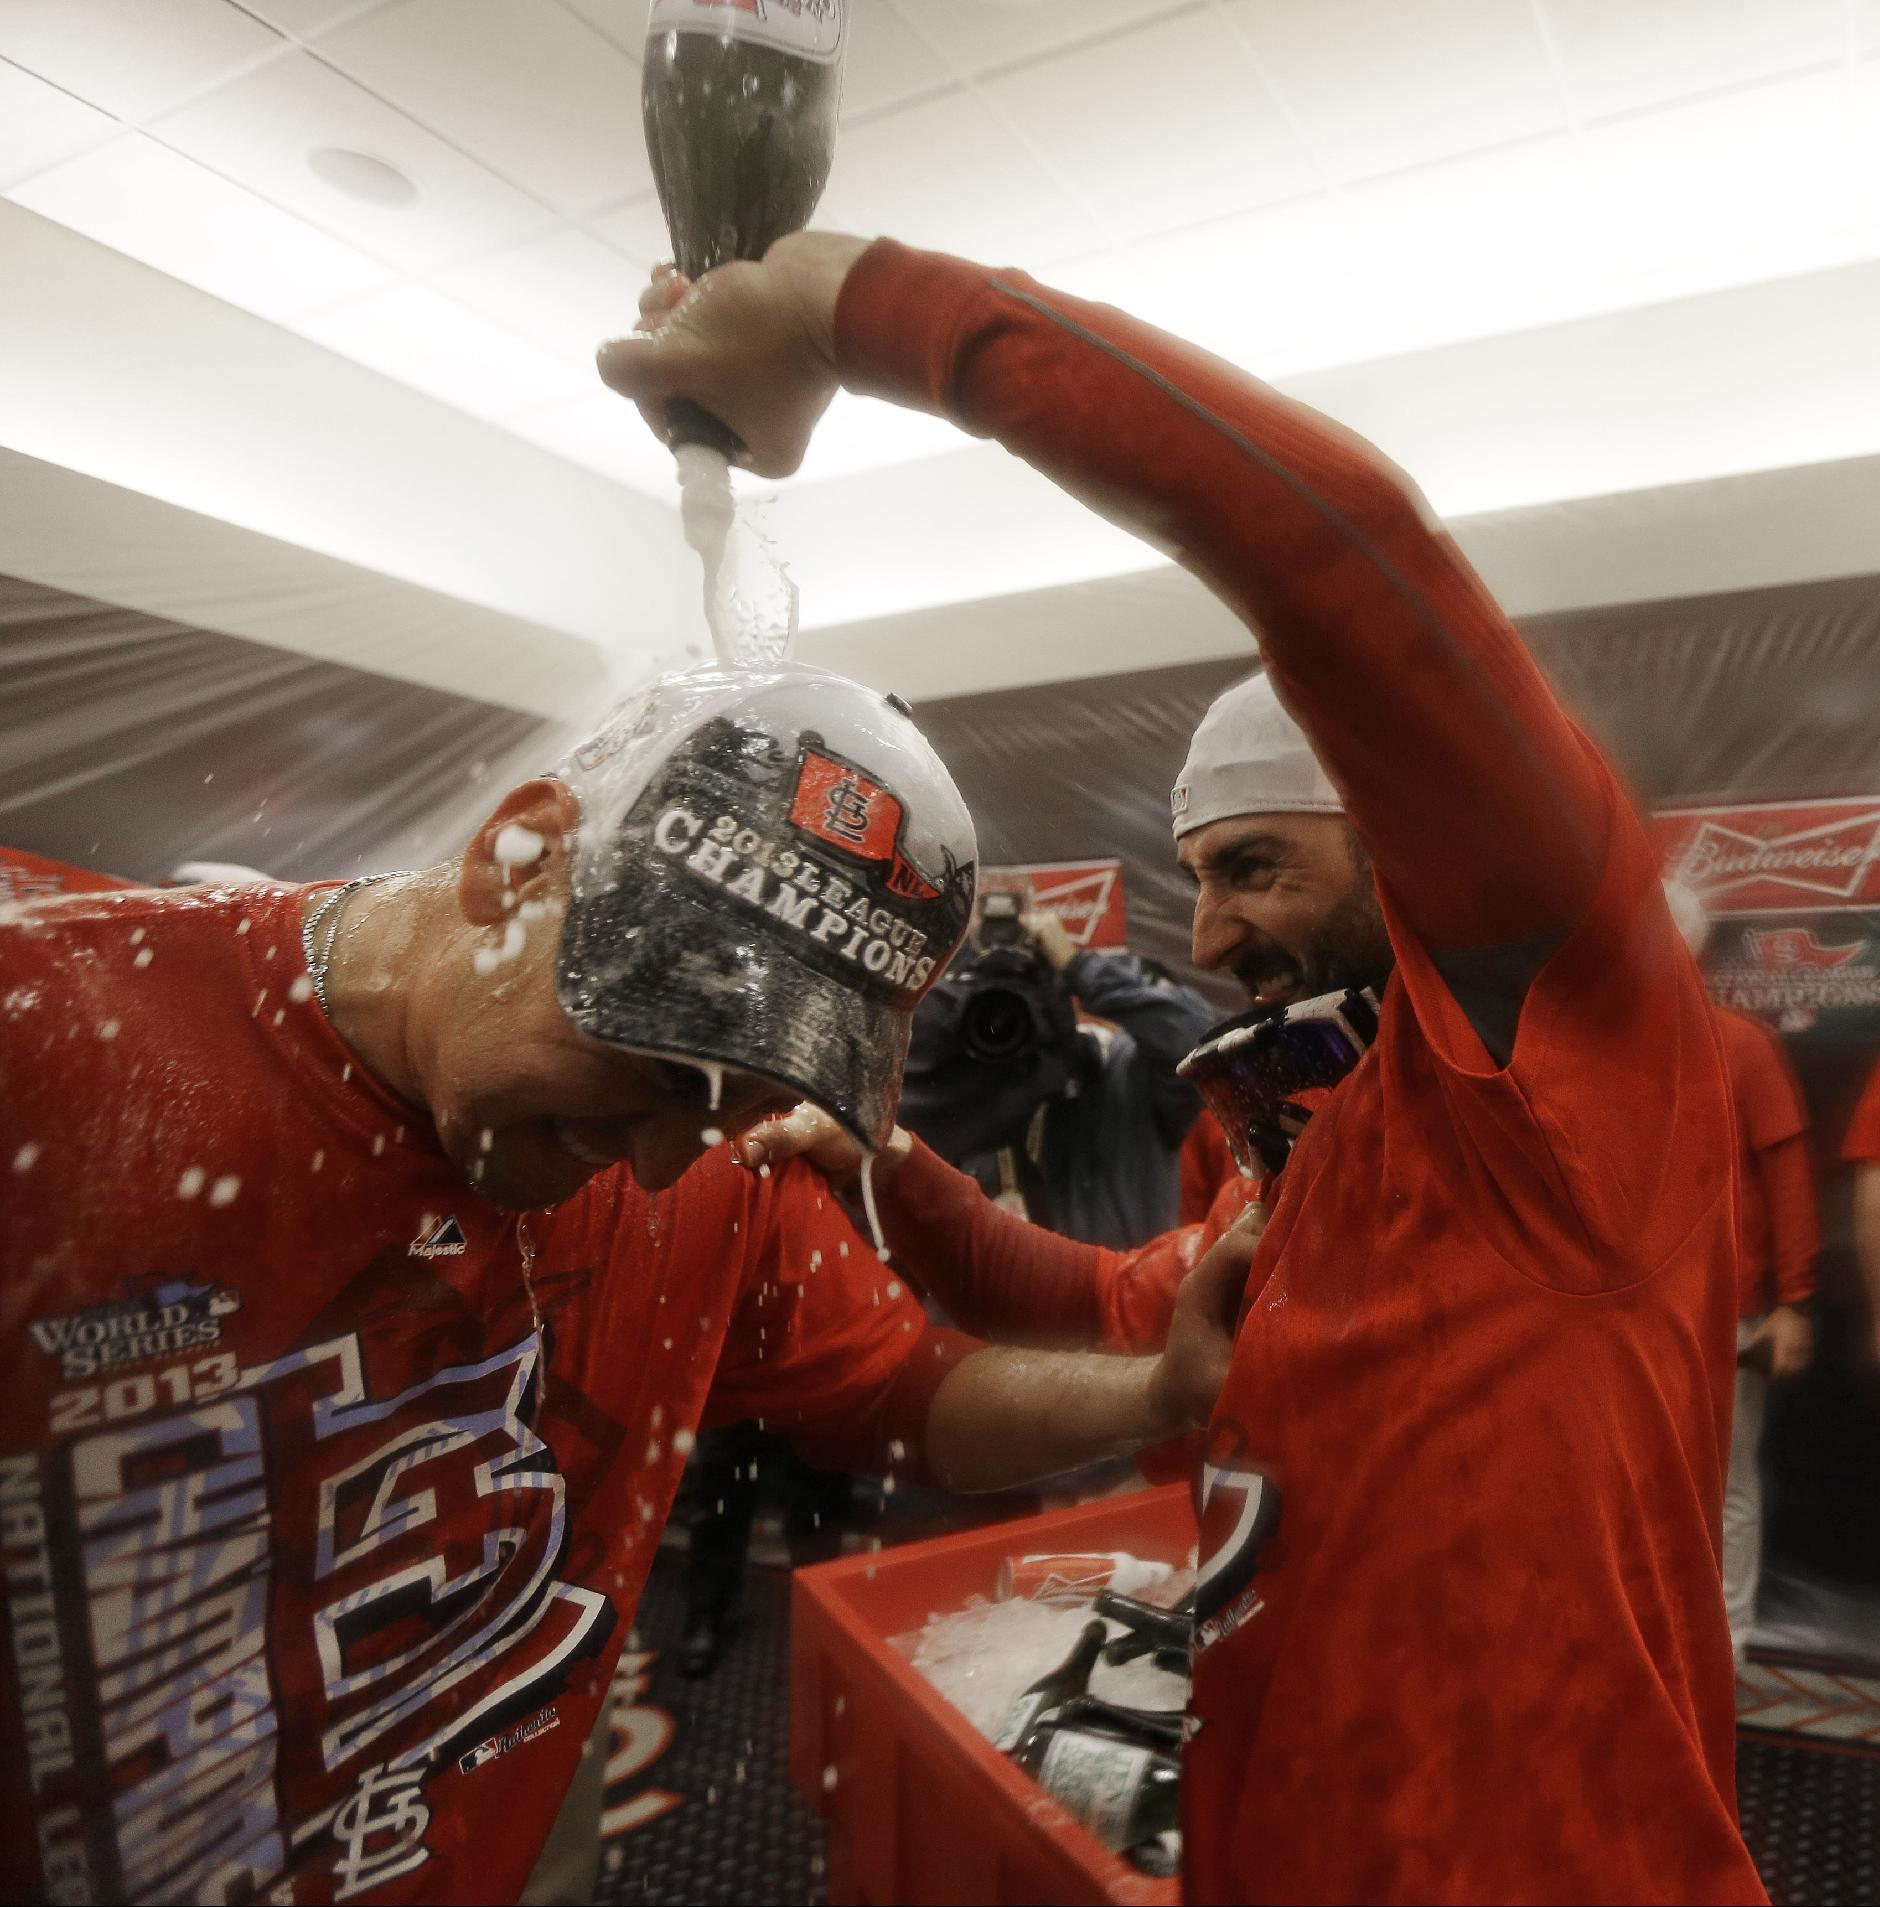 CORRECTS SPELLING OF ALLEN CRAIG FROM ALAN AS ORIGINALLY SENT- St. Louis Cardinals' Allen Craig has Champagne poured on him by teammate Daniel Descalso after Game 6 of the National League baseball championship series against the Los Angeles Dodgers, Friday, Oct. 18, 2013, in St. Louis. The Cardinals won 9-0 to win the series